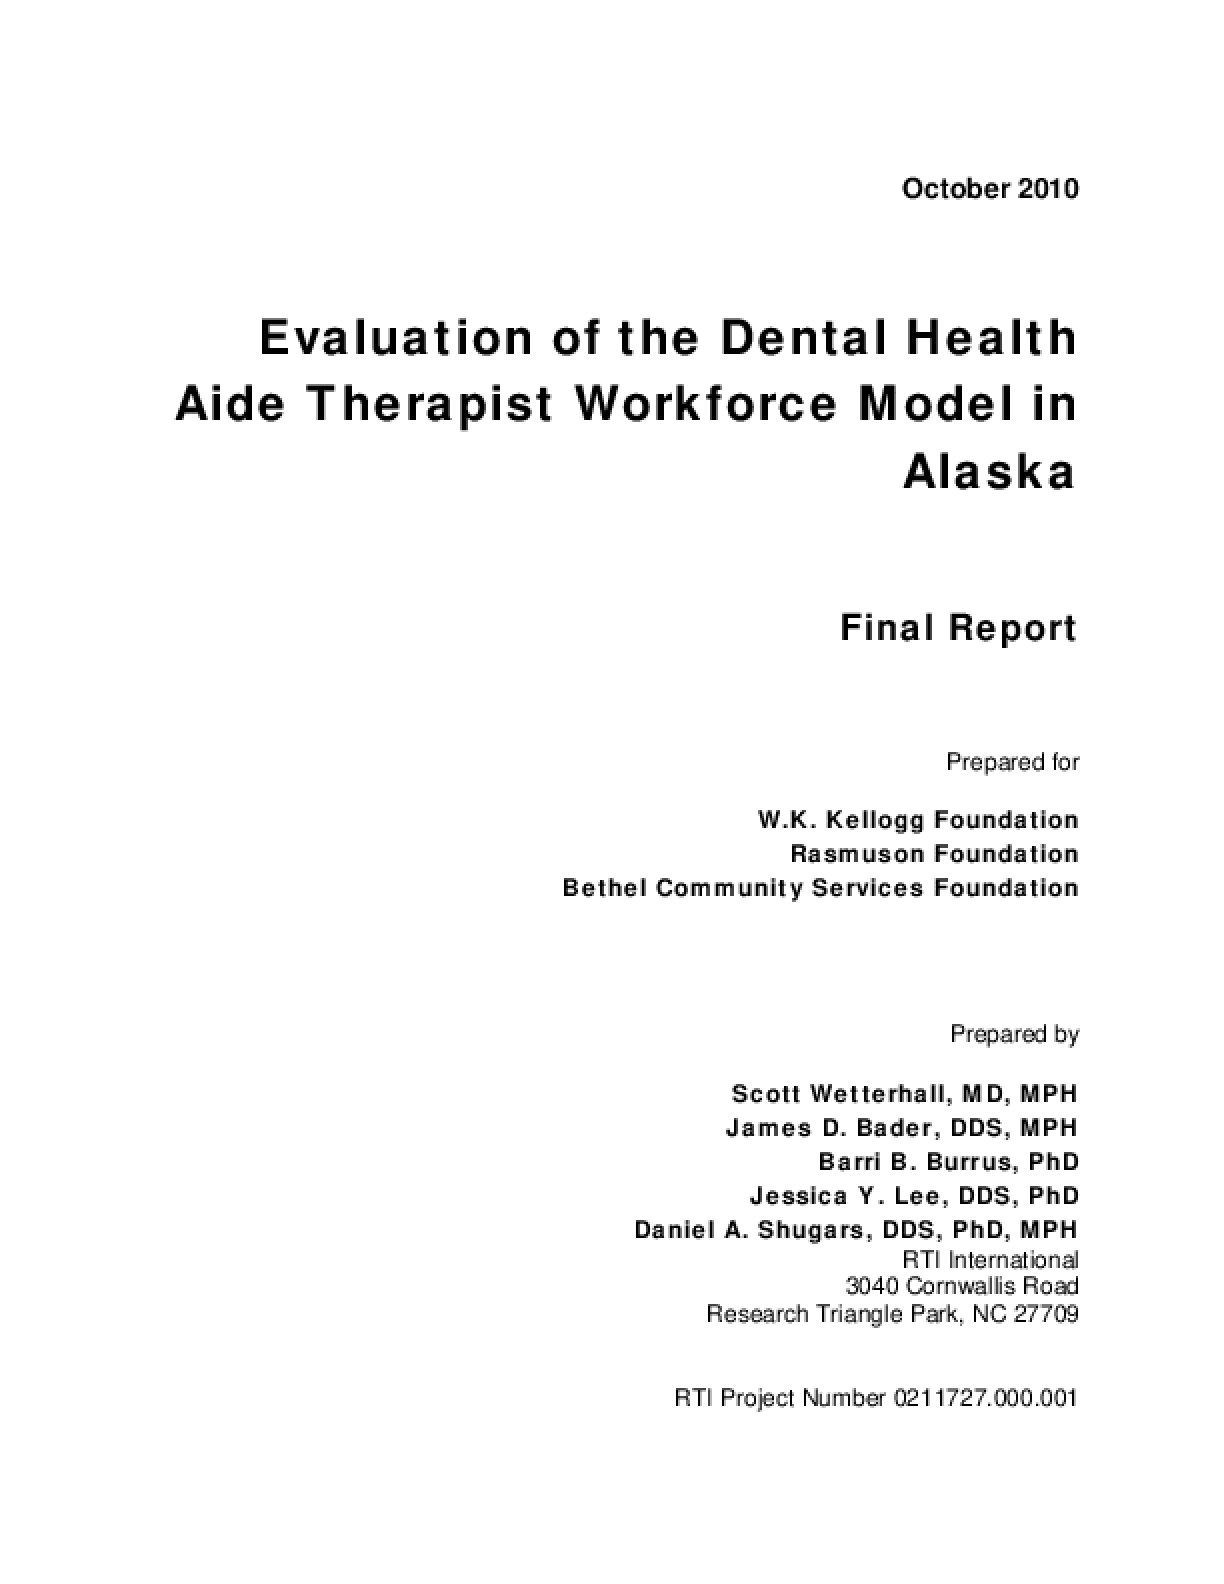 Evaluation of the Dental Health Aide Therapist Workforce Model in Alaska (Final Report)